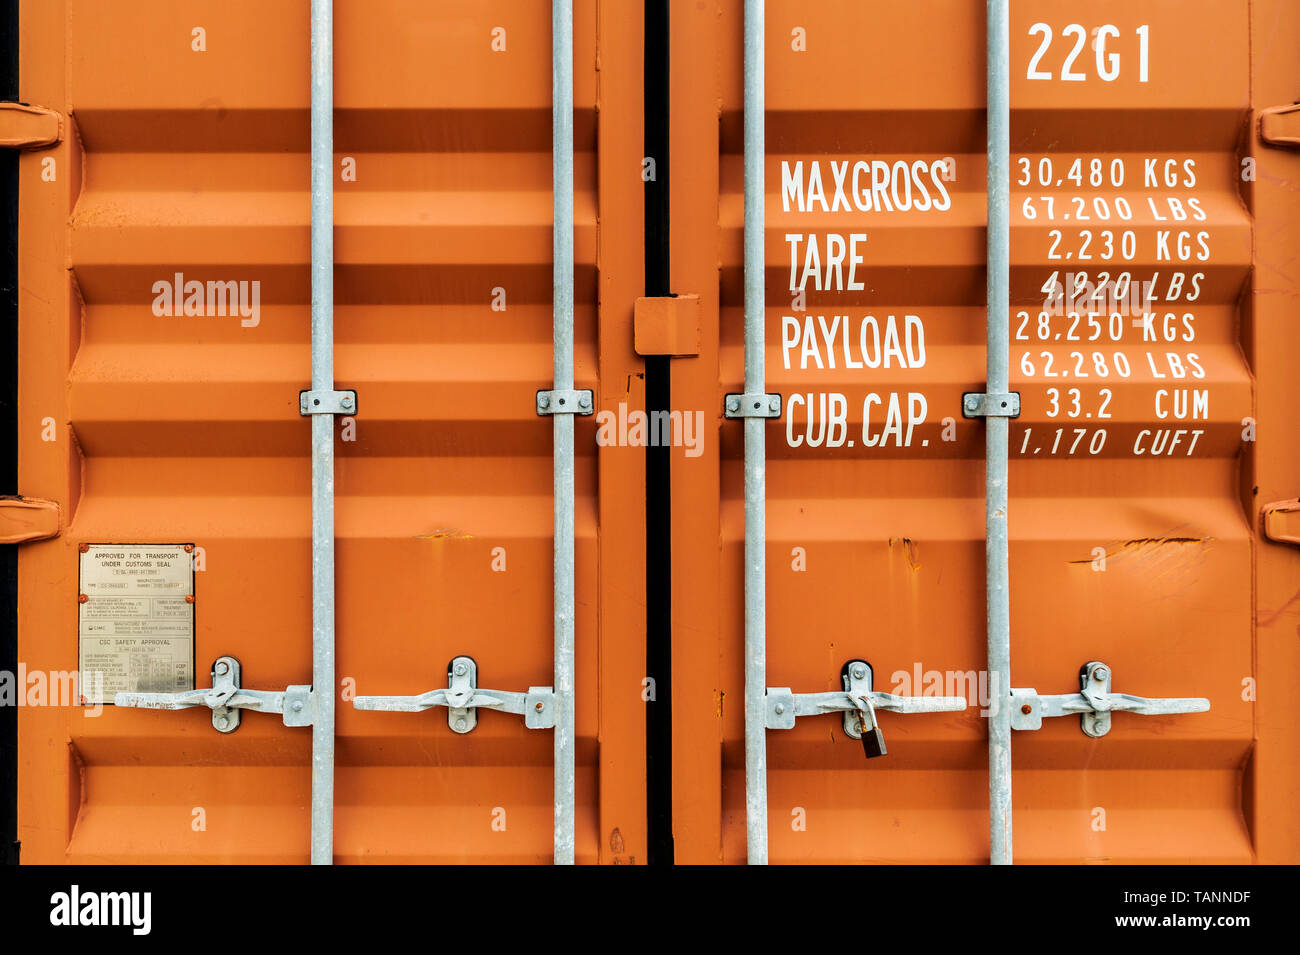 Iso Container Stock Photos & Iso Container Stock Images - Alamy